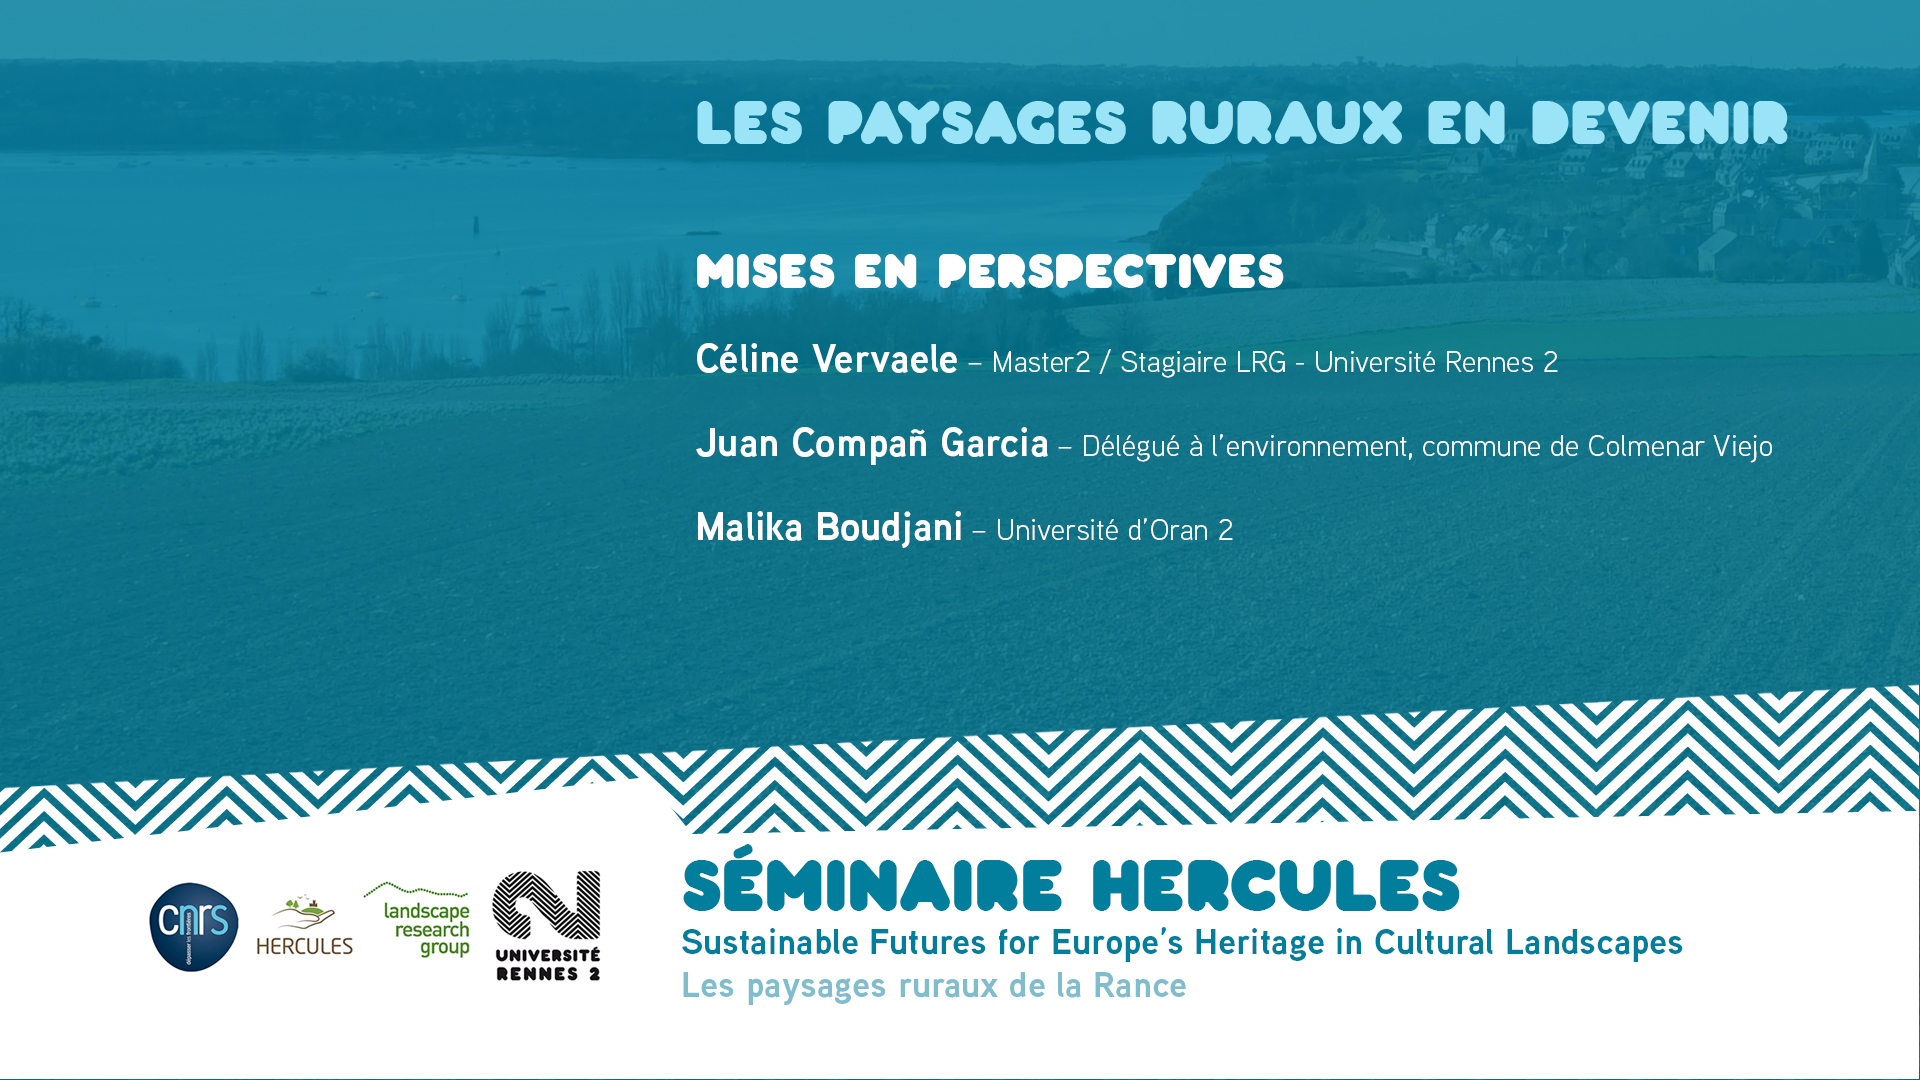 Les paysages ruraux en devenir – Mises en perspectives - Sustainable Futures for Europe's Heritage in Cultural Landscapes |